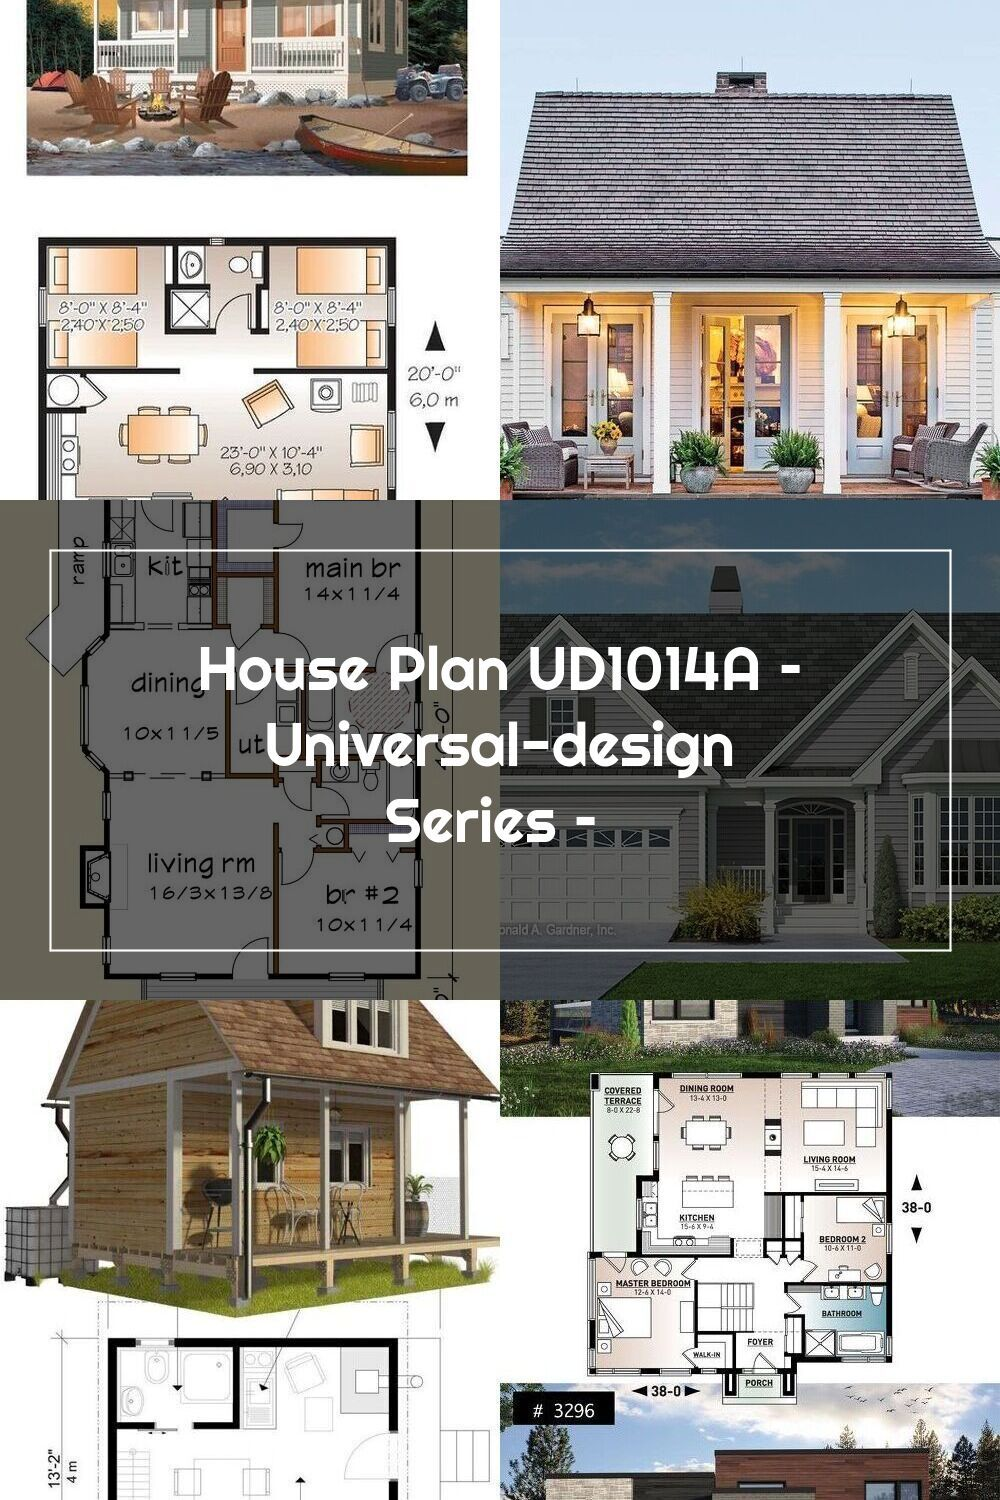 House Plan Ud1014a Universal Design Series In 2020 House Plans Universal Design Small House Plans